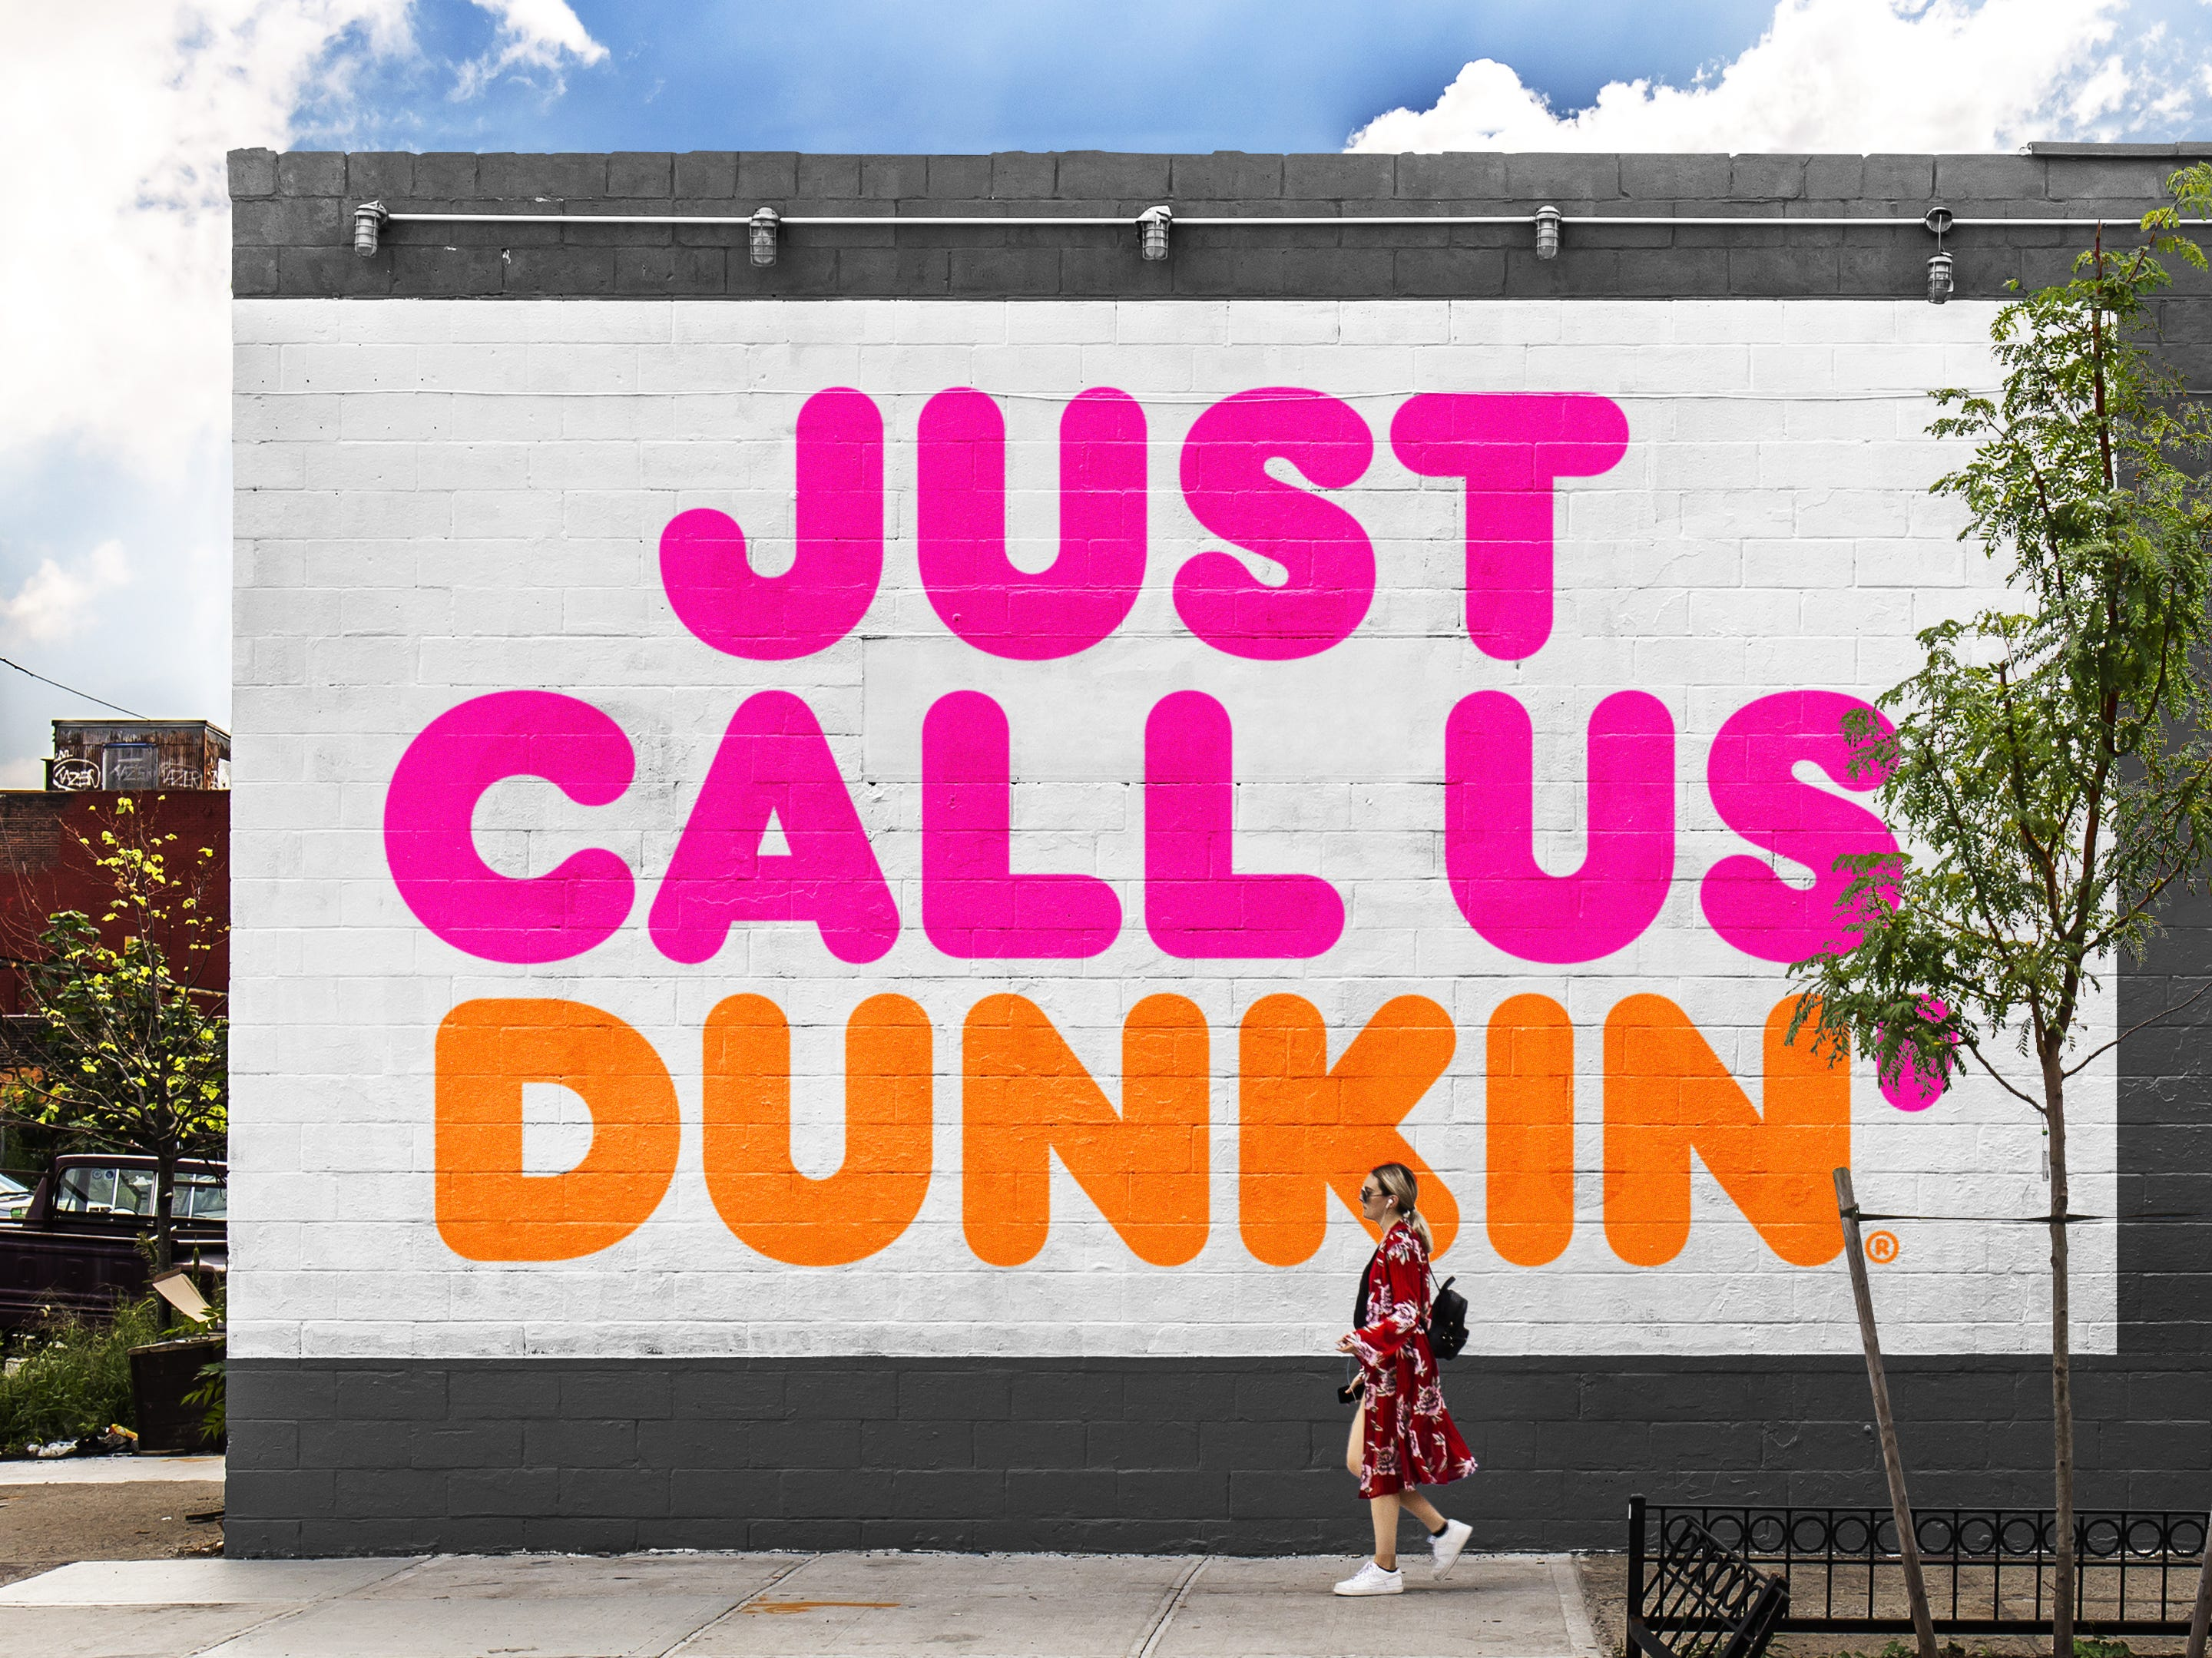 The brand formerly known as Dunkin' Donuts has announced some sweet specials.